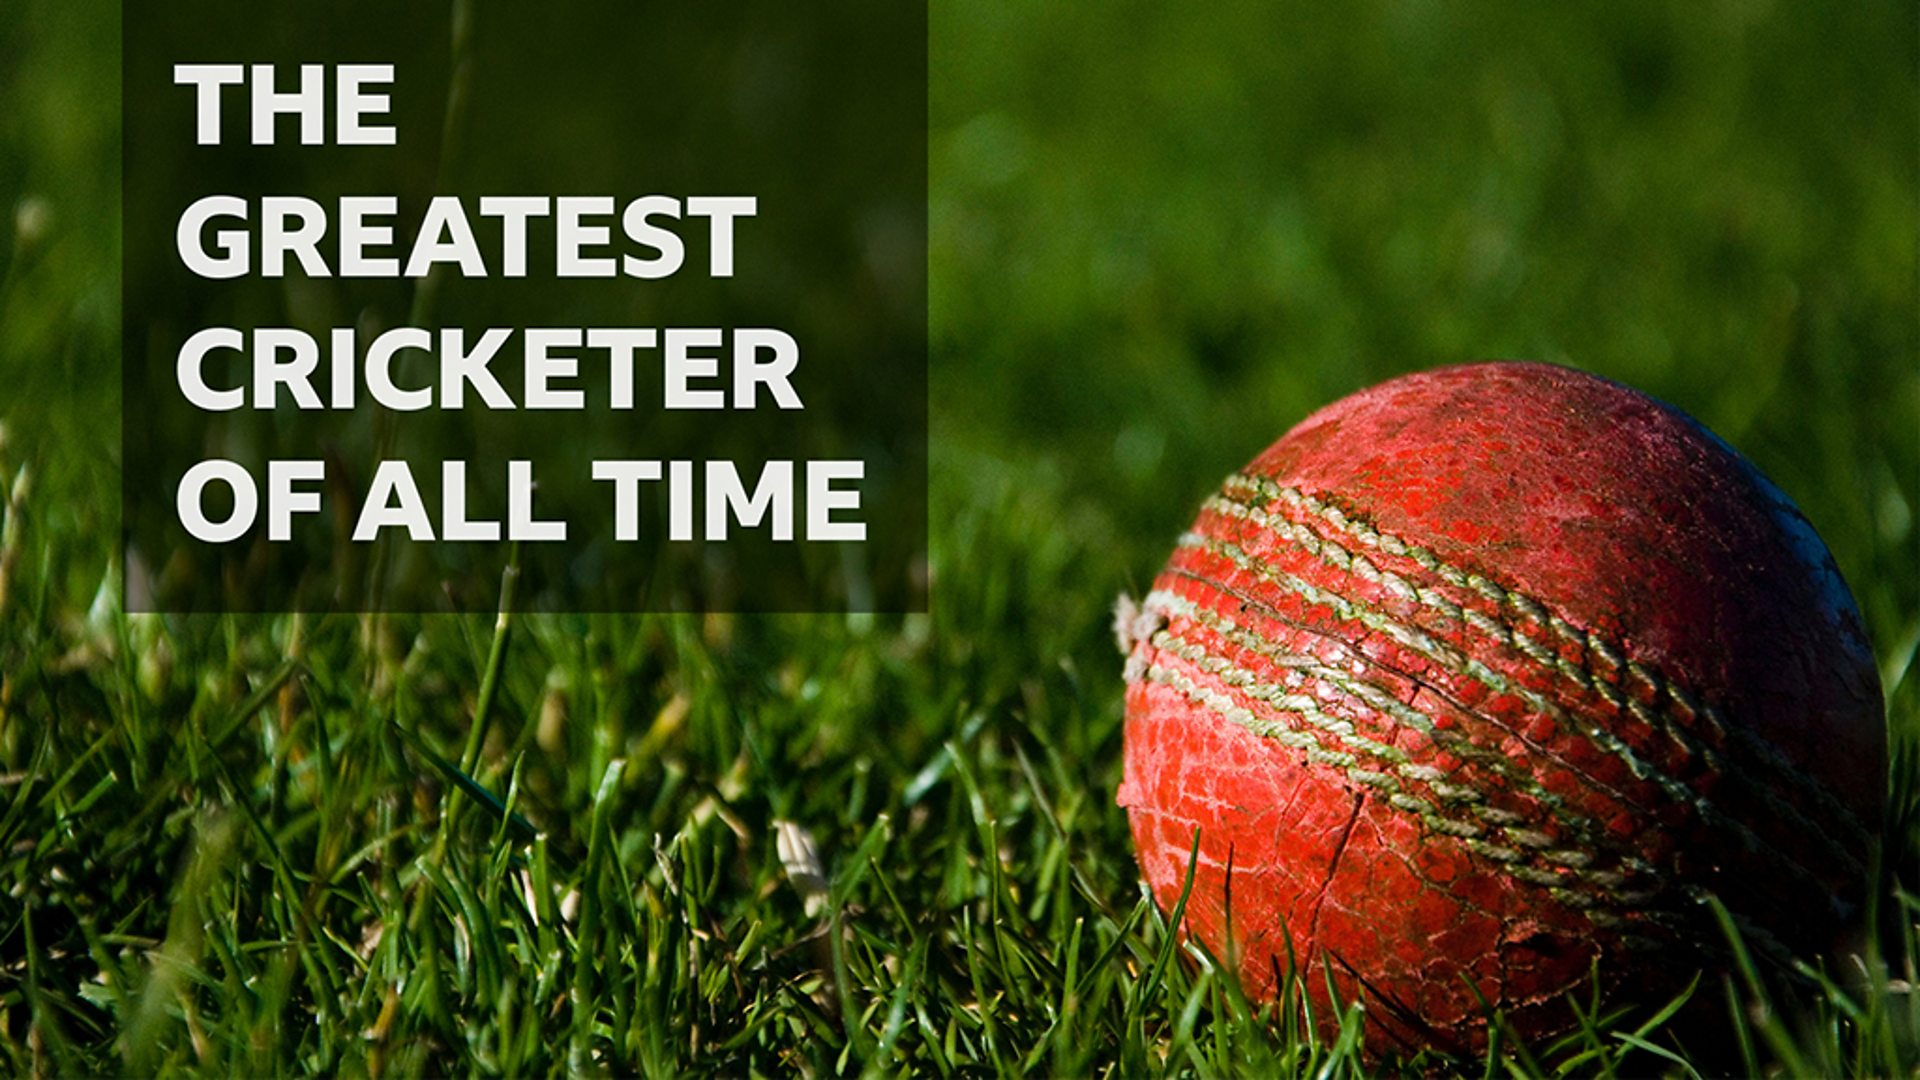 Top 10 Greatest Cricketer of All Time